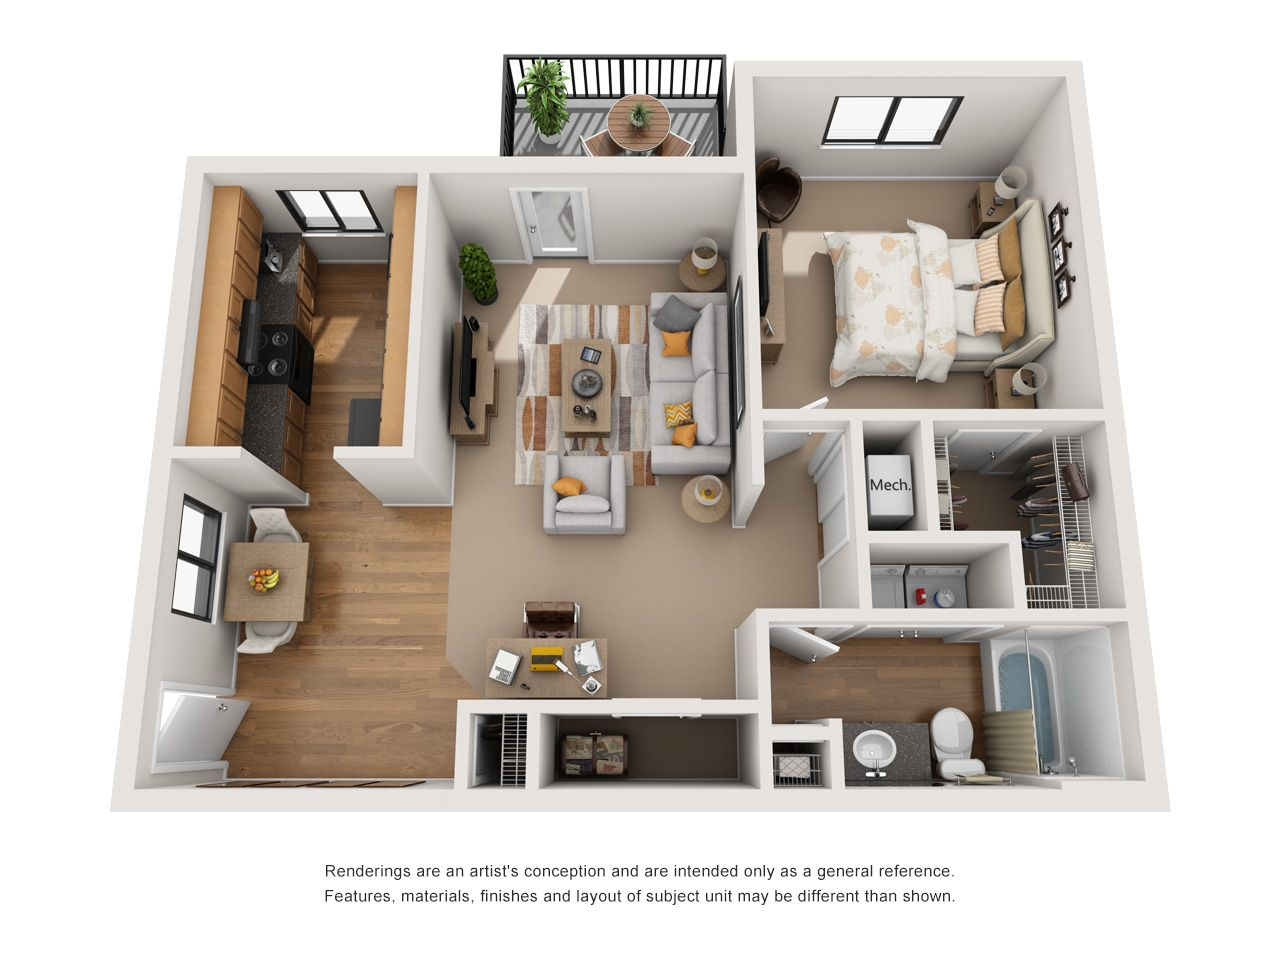 Pet Friendly Apartments In Indianapolis Indiana For Rent Indianapolis Indiana Apartment Steadf Two Bedroom Tiny House Sims House Design Sims House Plans